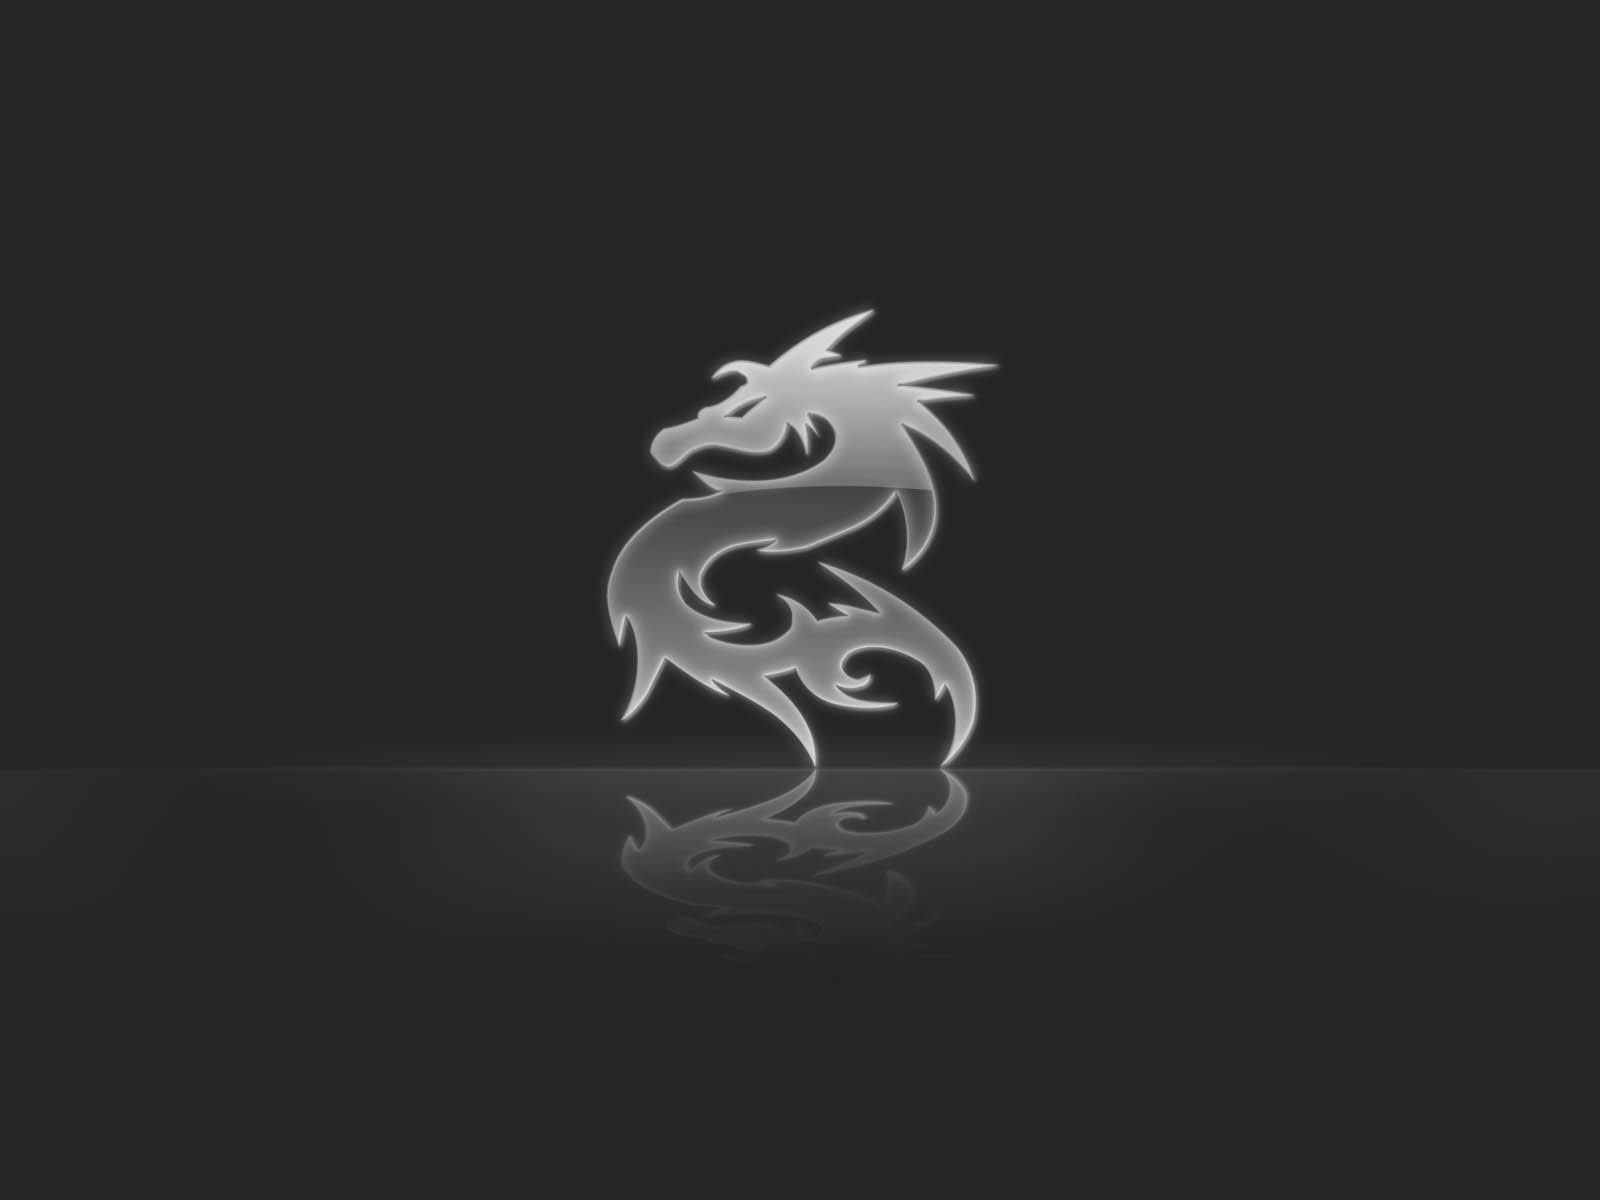 White And Black Dragons Wallpaper Dragon wallpapers 1600x1200